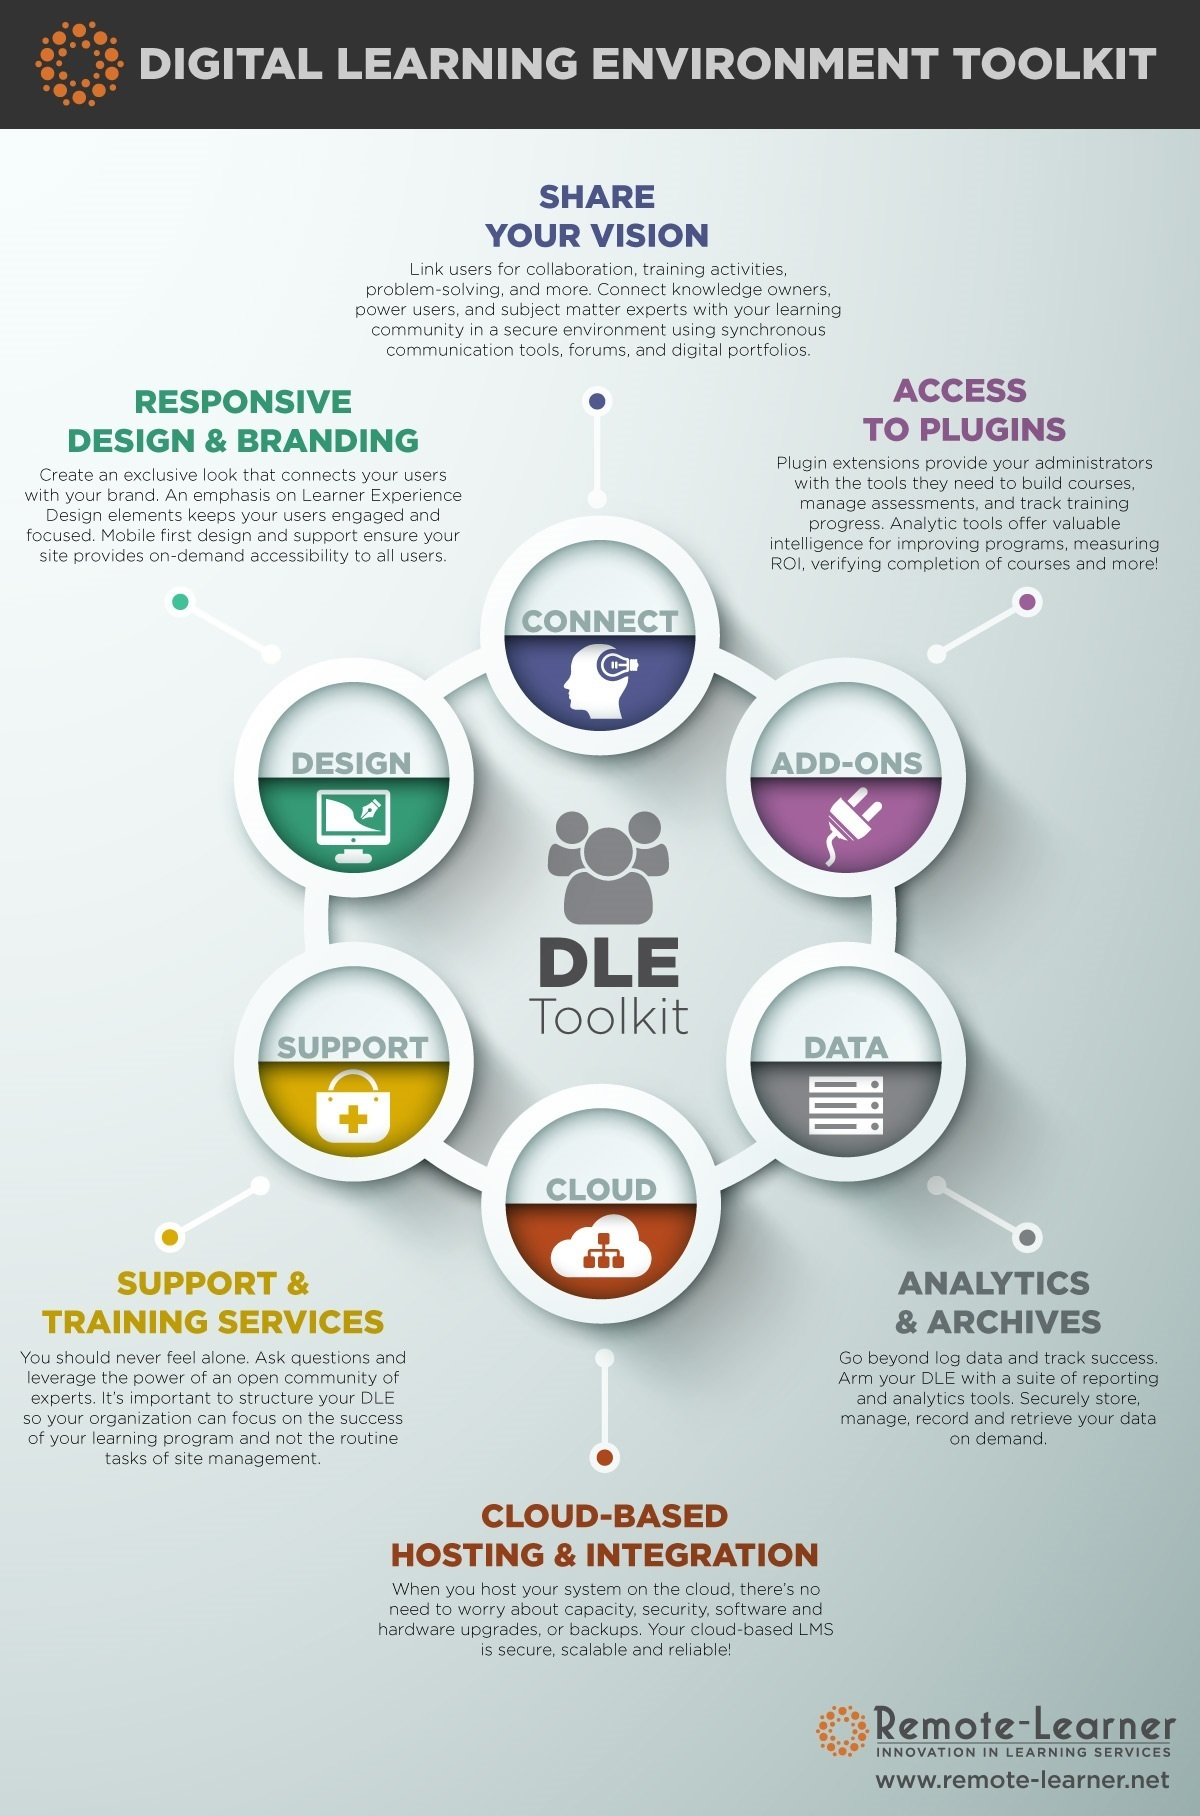 Digital Learning Environment Toolkit Infographic E